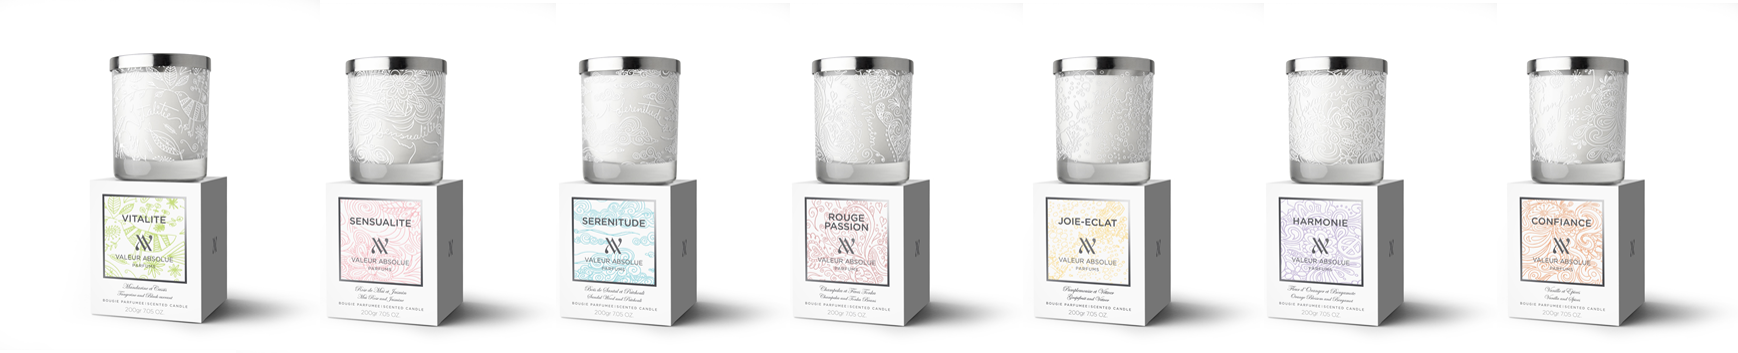 Valeur Absolue Introduces Luxury Candle Line From France